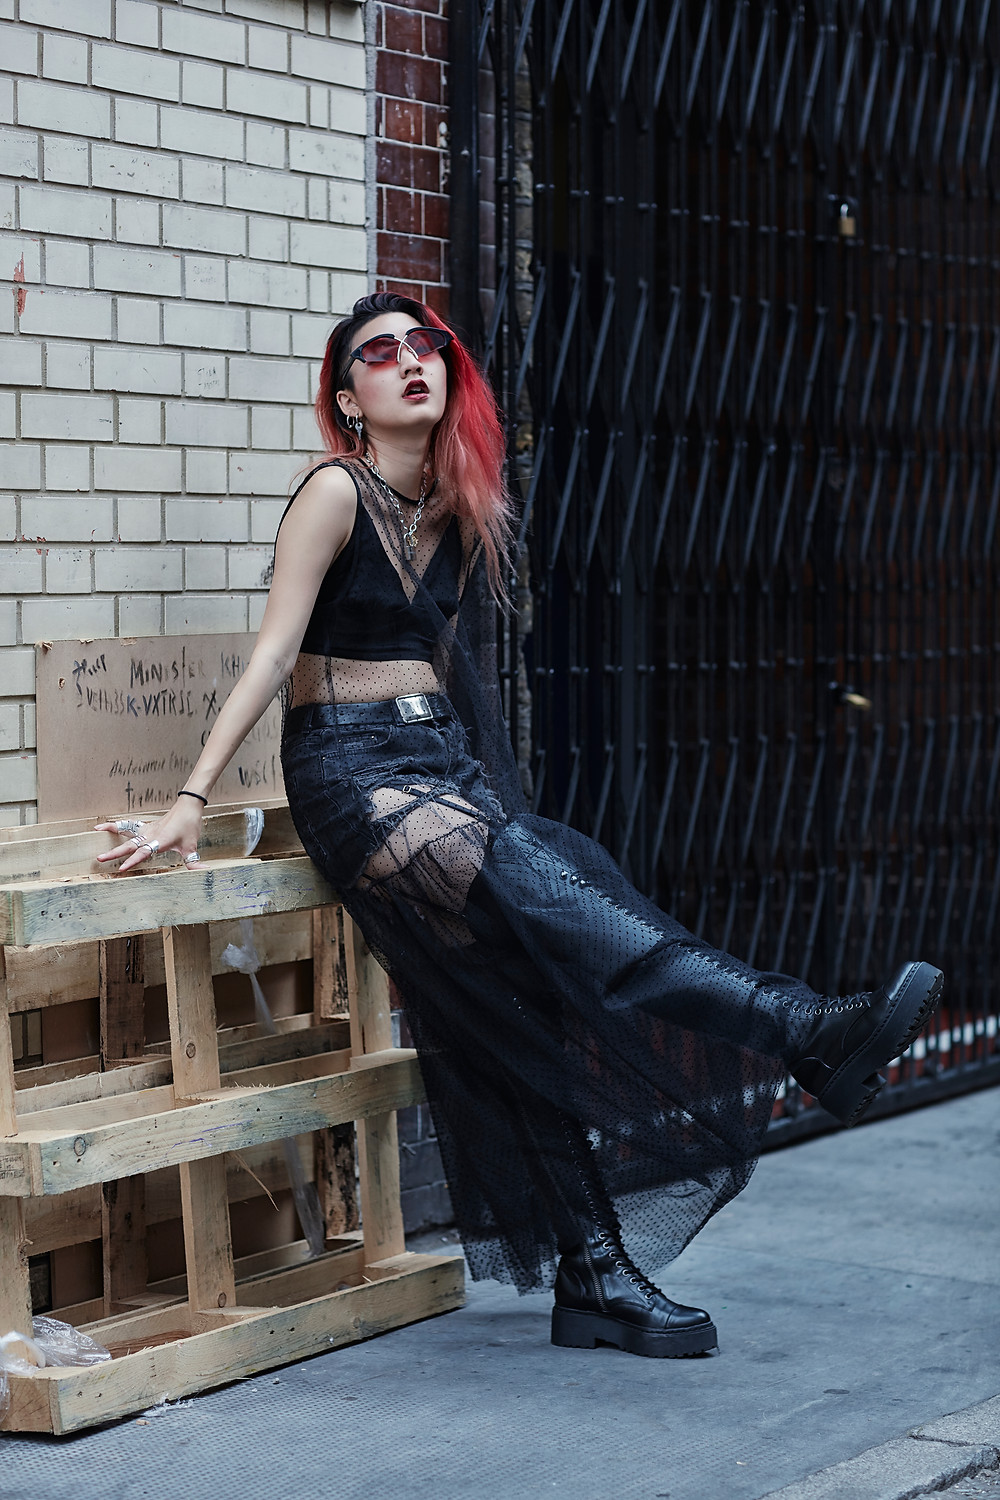 young Thai female with flame red hair leans back in a London side street against a tiled wall and wooden pallet wearing knee high Dr Martens style boots, cut off black denim shorts, a sports bra style top and a sheer black dress overlay